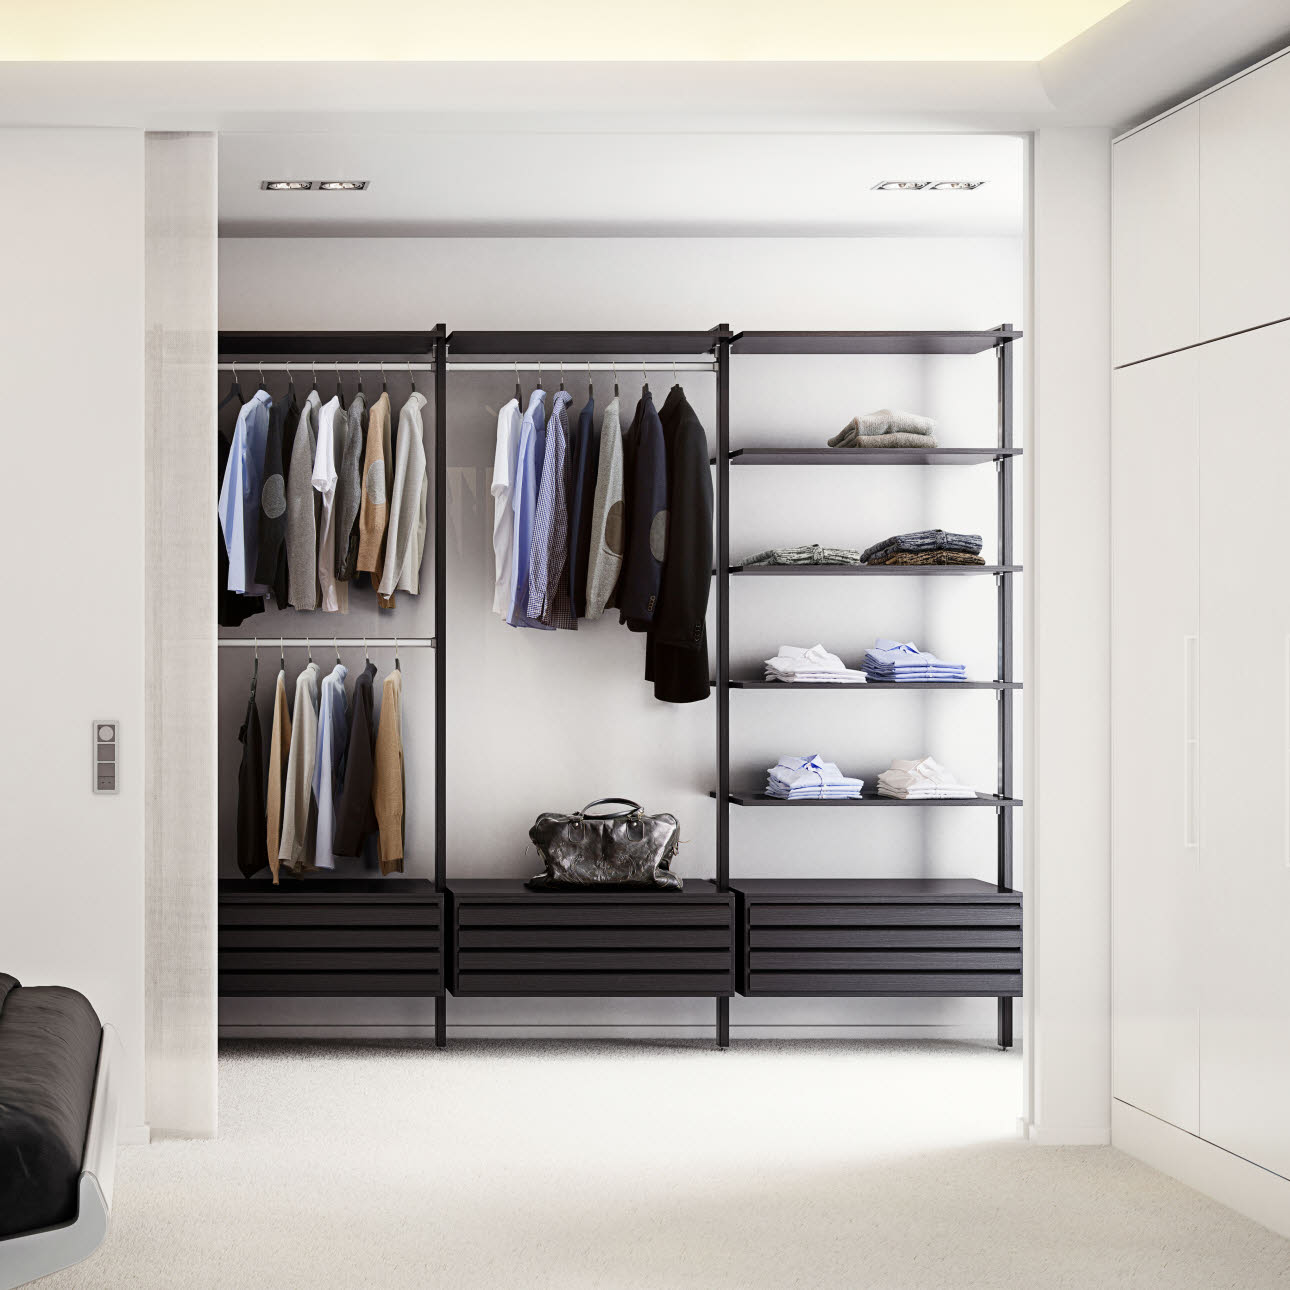 tall storage units for living room dark wooden floor ideas wardrobes - walk-in closets and lovely